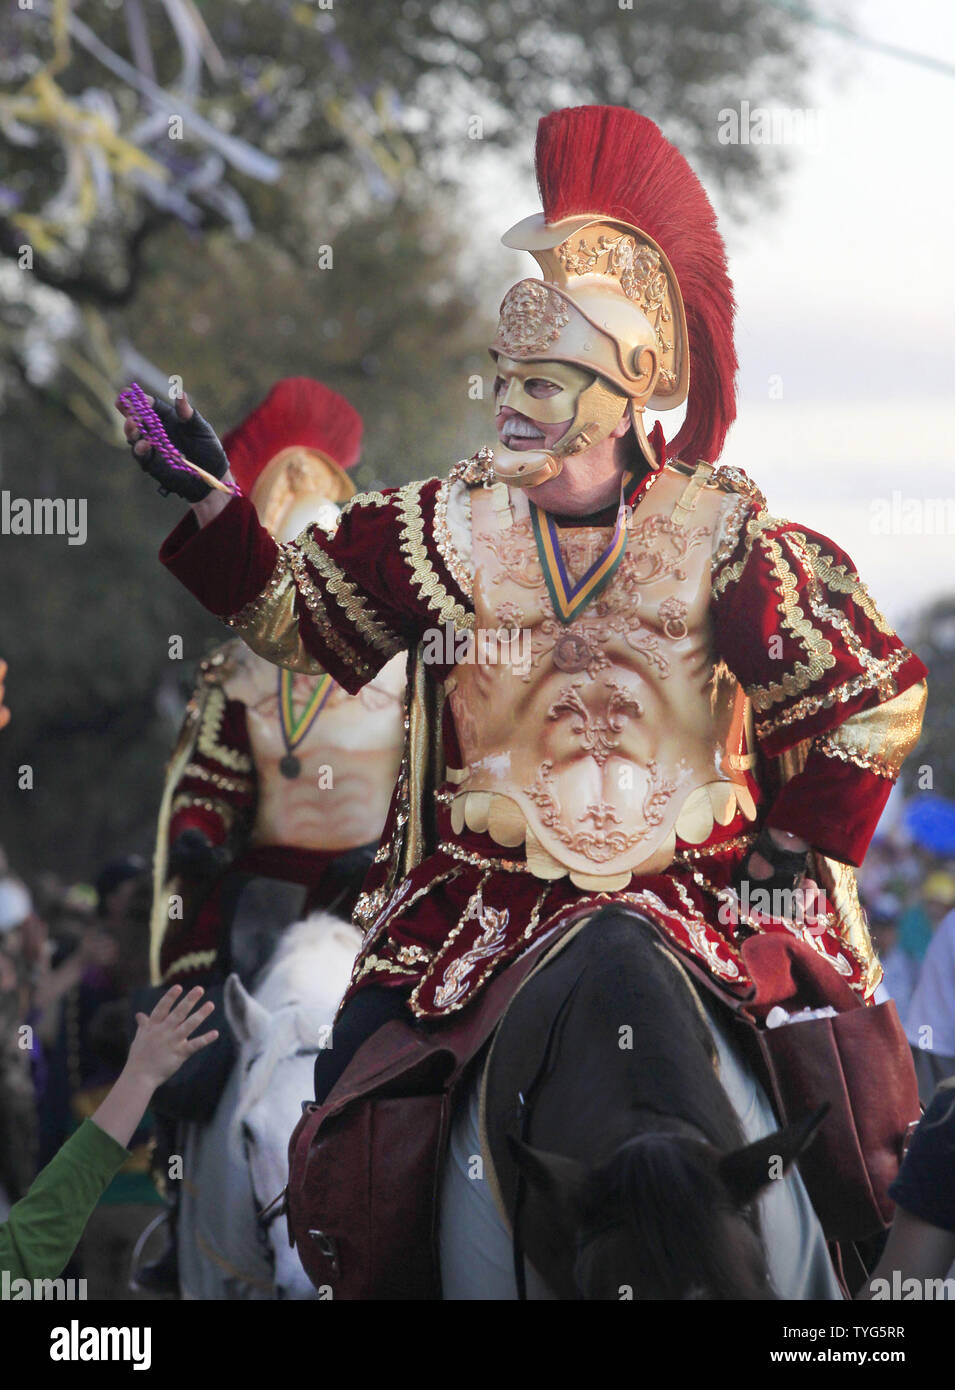 A member of the Krewe of Bacchus Mardi Gras parade toss beads to the crowd from horseback on Napoleon Avenue in New Orleans Sunday, February 26, 2017. The Krewe of Bacchus has been rolling on the traditional Uptown route since 1969.  Photo by AJ Sisco/UPI Stock Photo